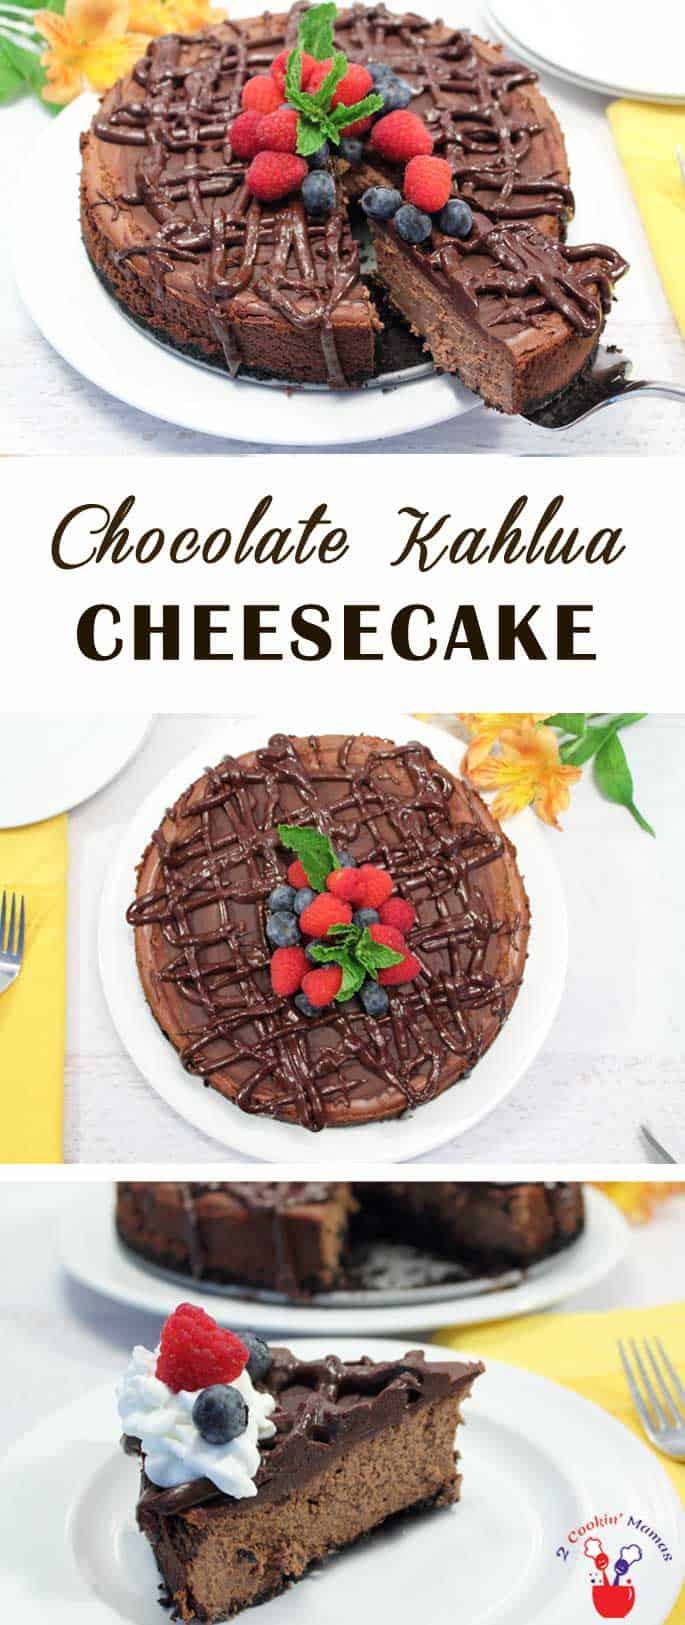 Chocolate Kahlua Cheesecake | 2 Cookin Mamas This Dark Chocolate Kahlua Cheesecake is every chocolate lovers dream. To-die-for, rich & creamy chocolate cheesecake that is taken up a notch with a hint of kahlua then, just to put it over the top, a thick drizzle of more deep dark chocolate.